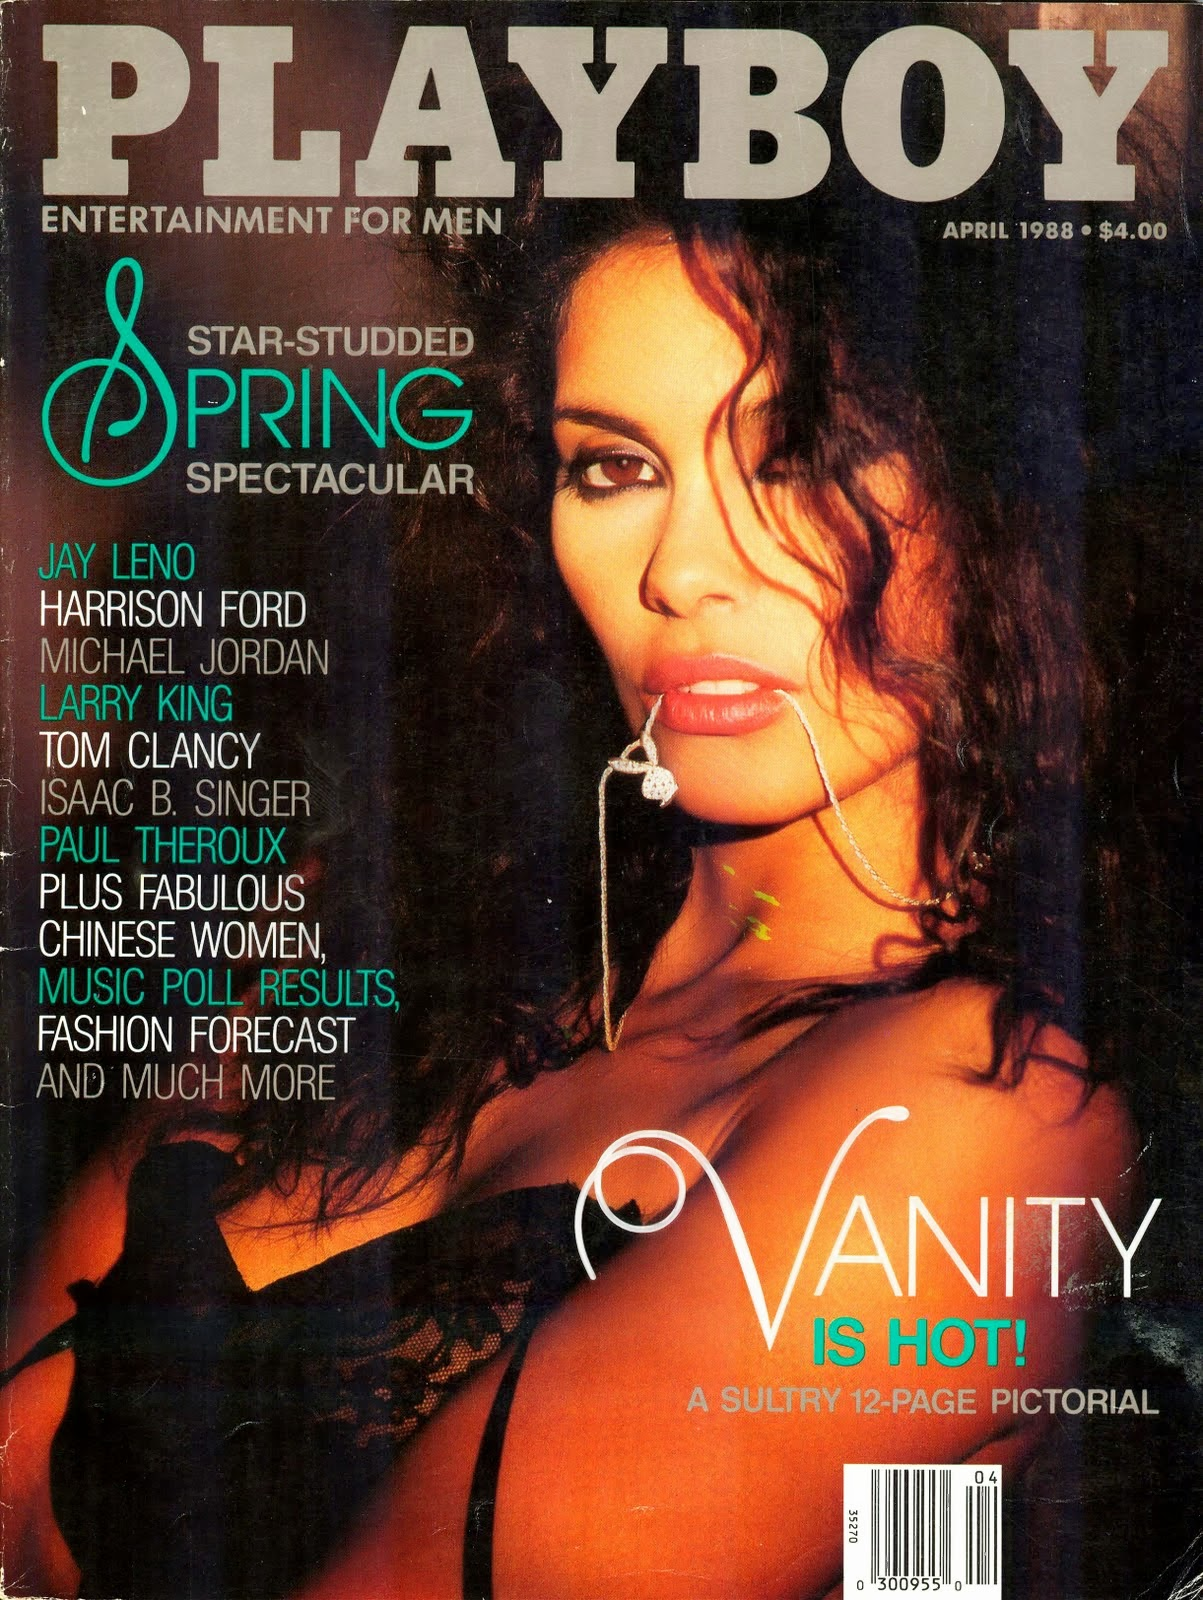 Playboy Vanity Denise Williams 1988